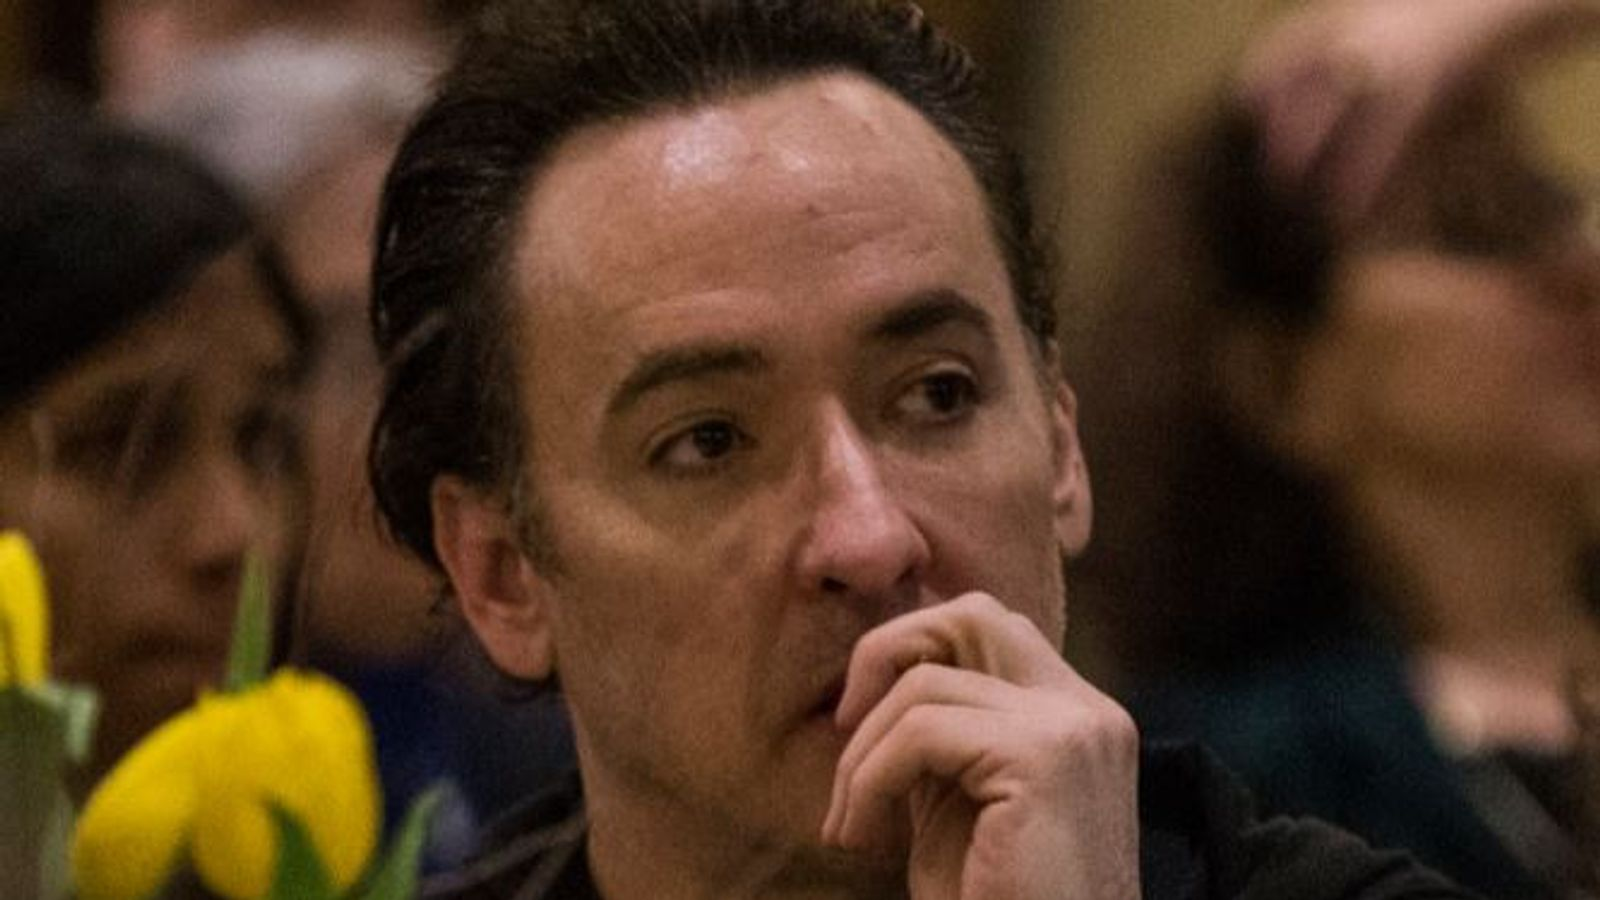 John Cusack apologises for sharing antisemitic tweet